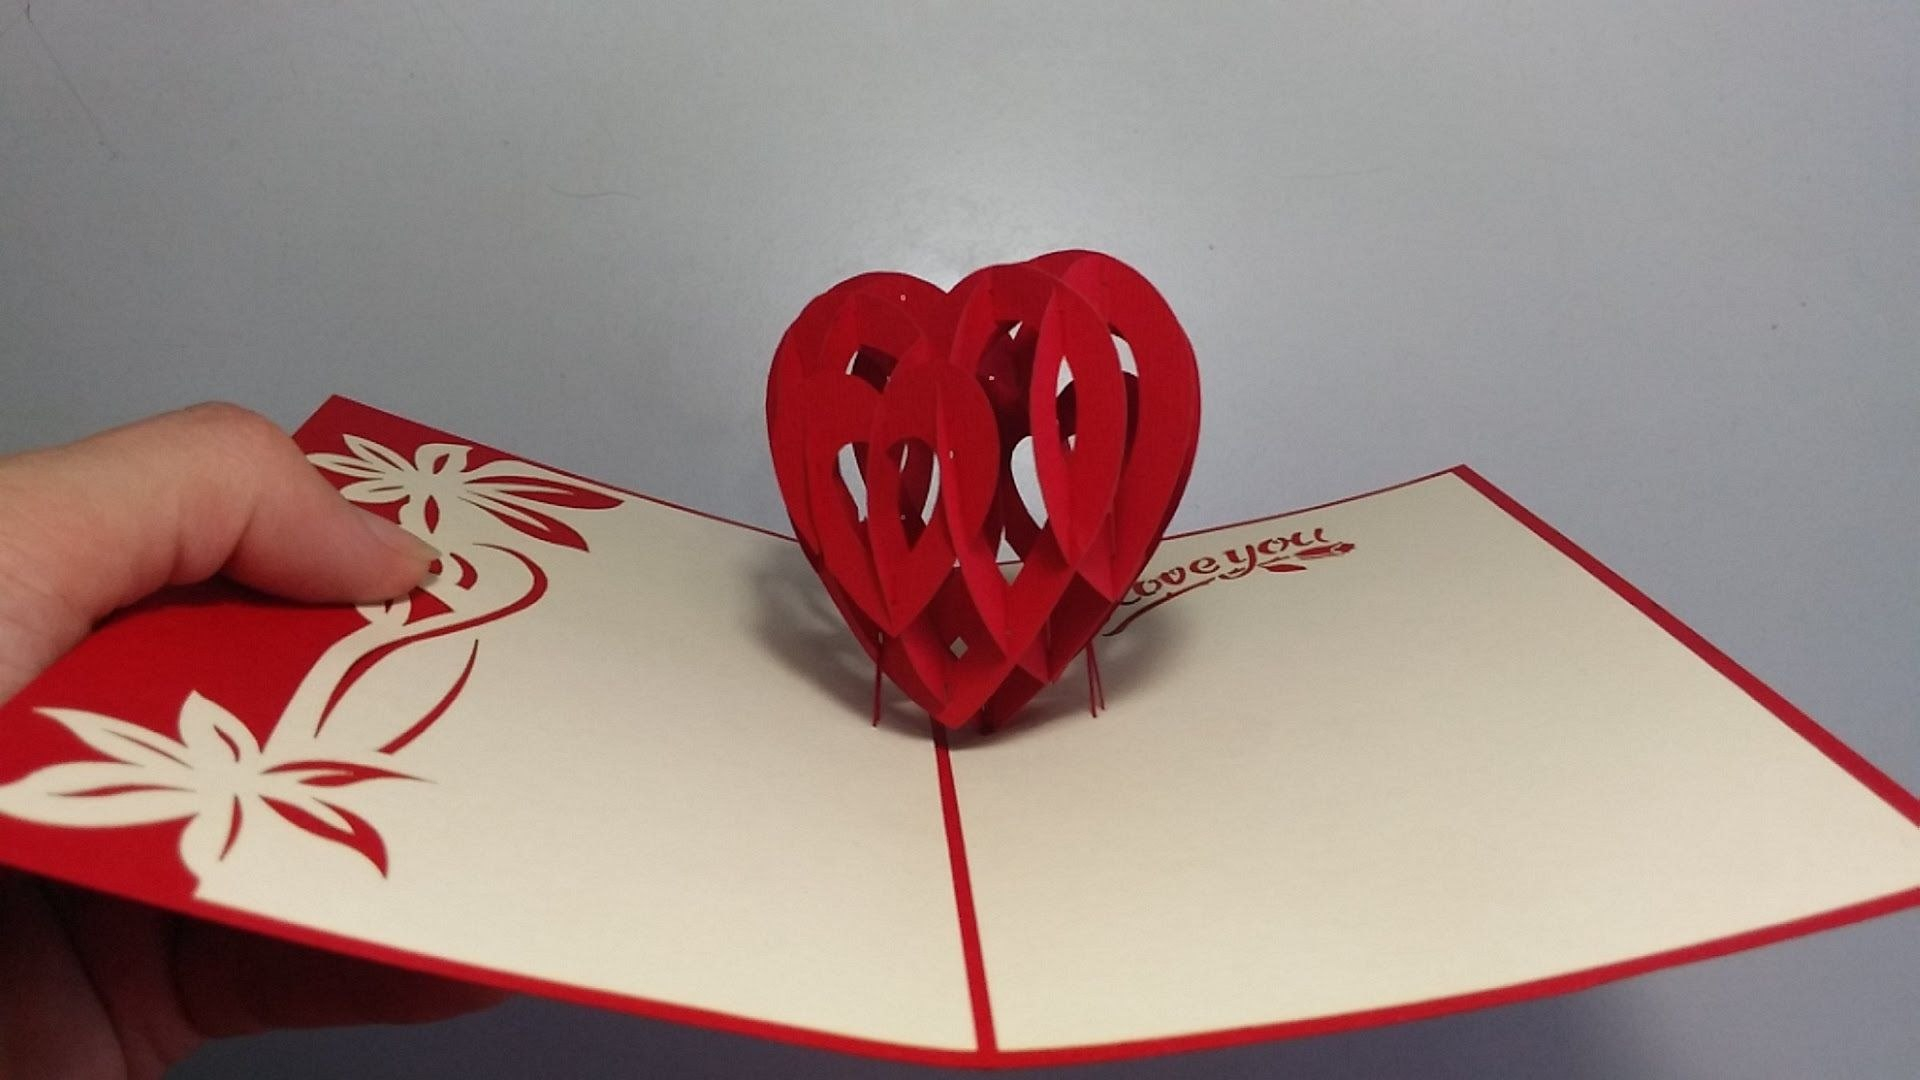 How To Make D Heart Valentine Day Pop Up Card  Aoc Craft In 3D Heart Pop Up Card Template Pdf